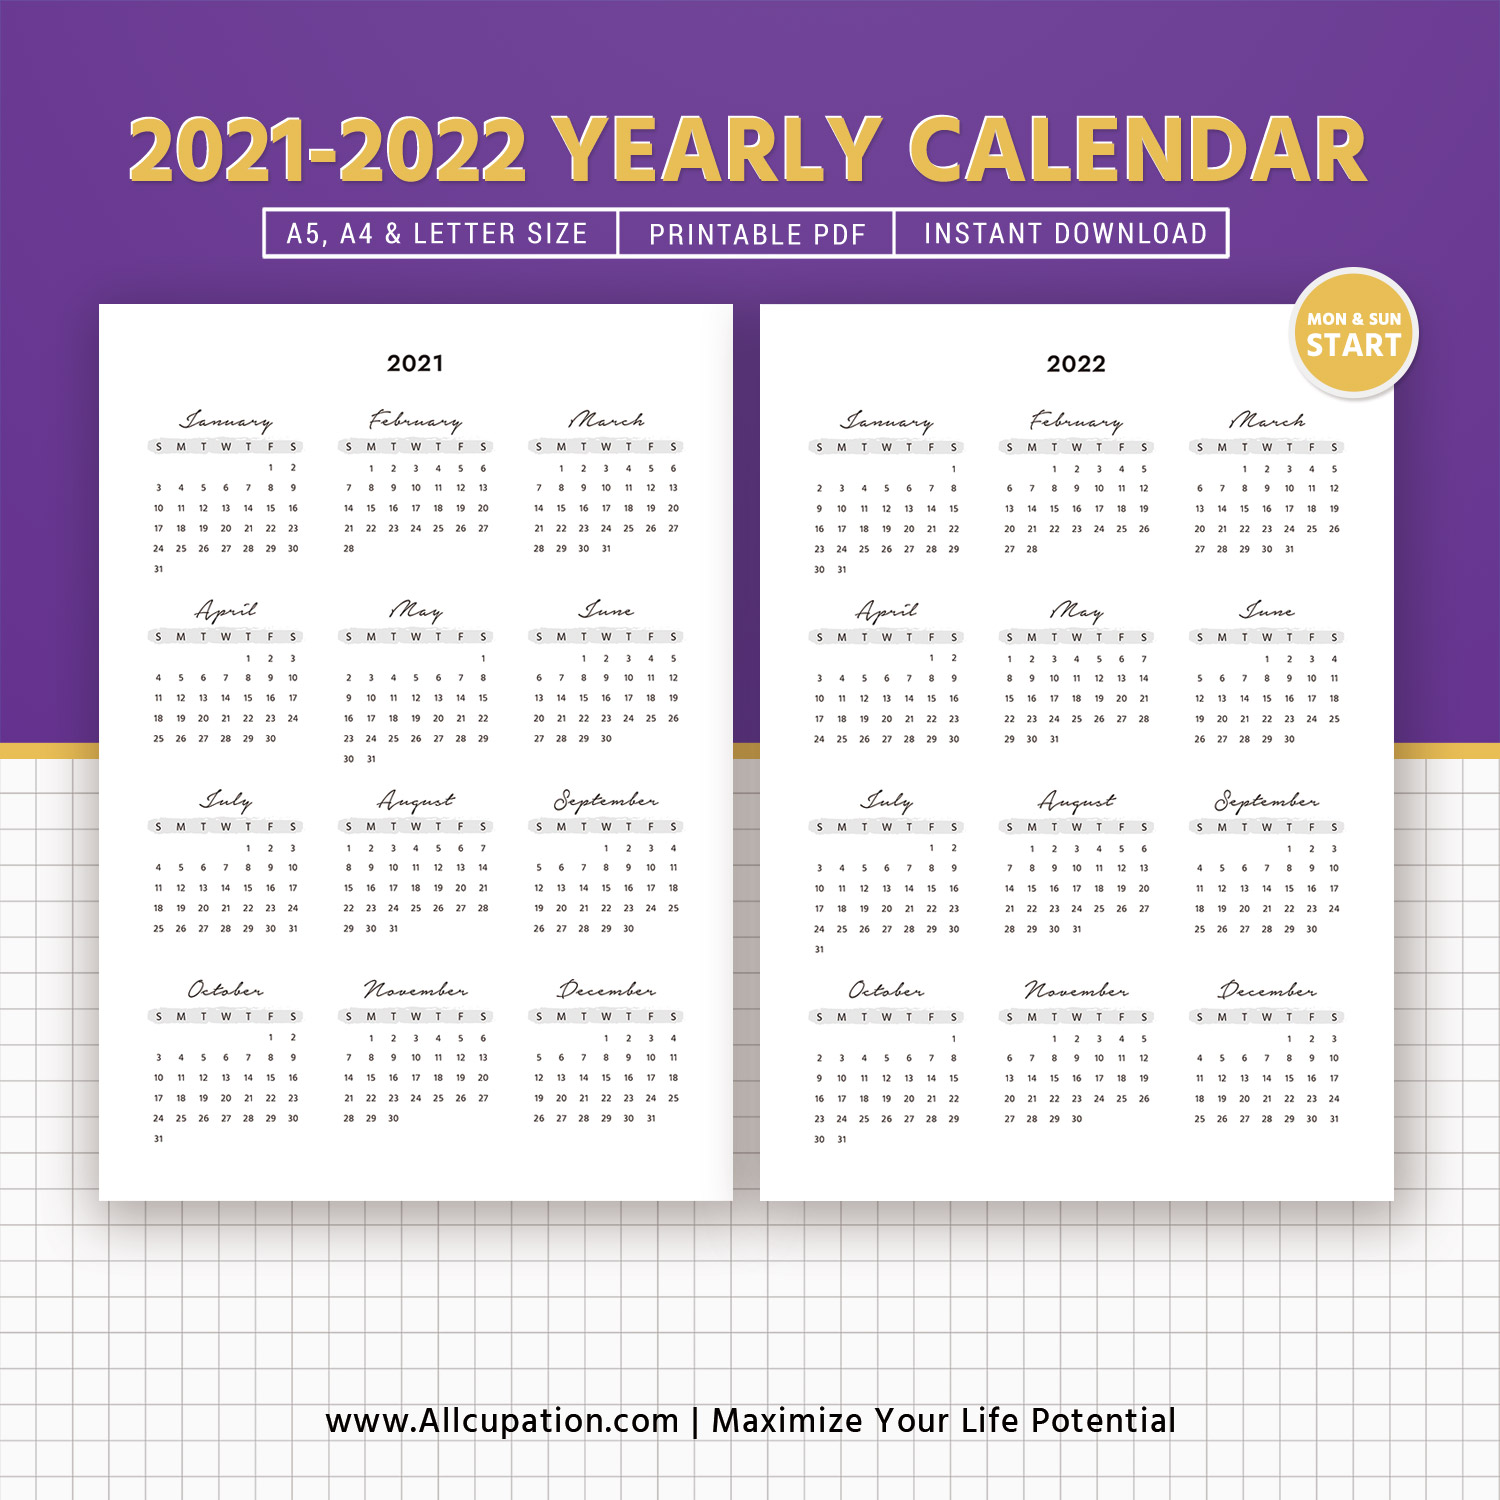 2022 Calendar At A Glance.2021 2022 Yearly Calendar Year At A Glance Printable Calendar Best Planner Planner Printable Planner Inserts Monday Sunday Start A5 A4 Letter Allcupation Optimized Resume Templates For Higher Employability